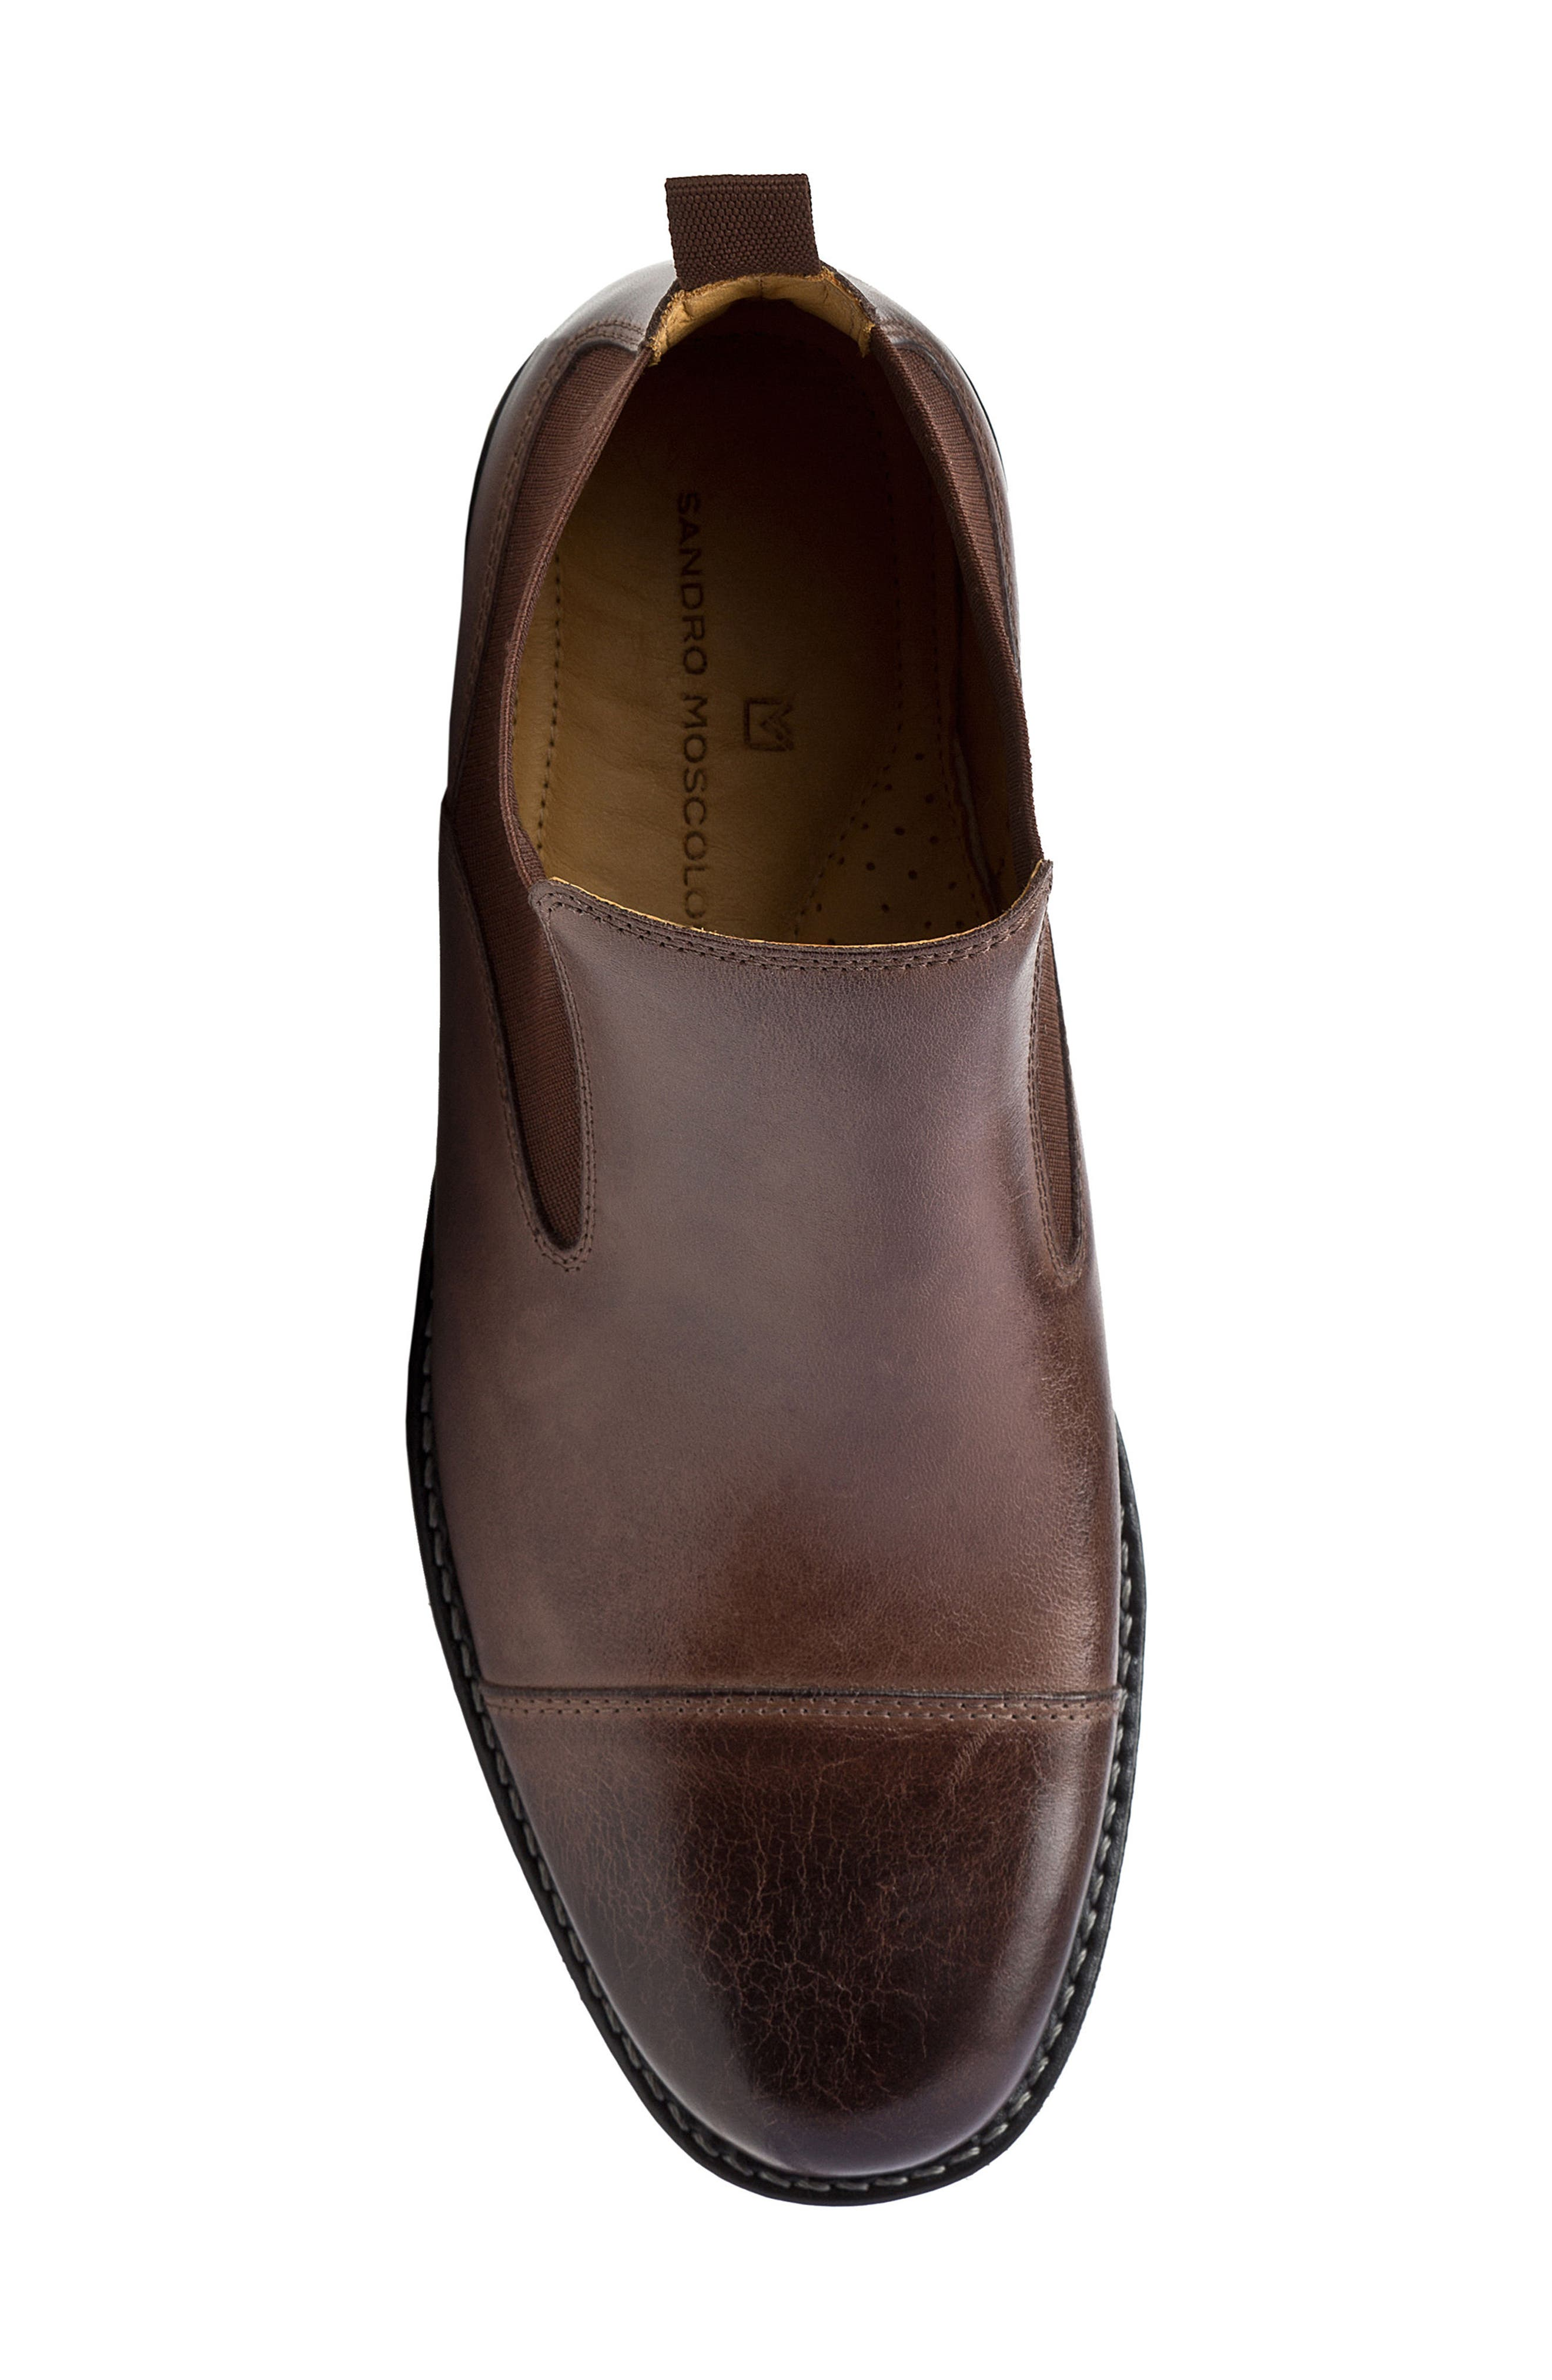 Norbert Chelsea Boot,                             Alternate thumbnail 5, color,                             Brown Leather